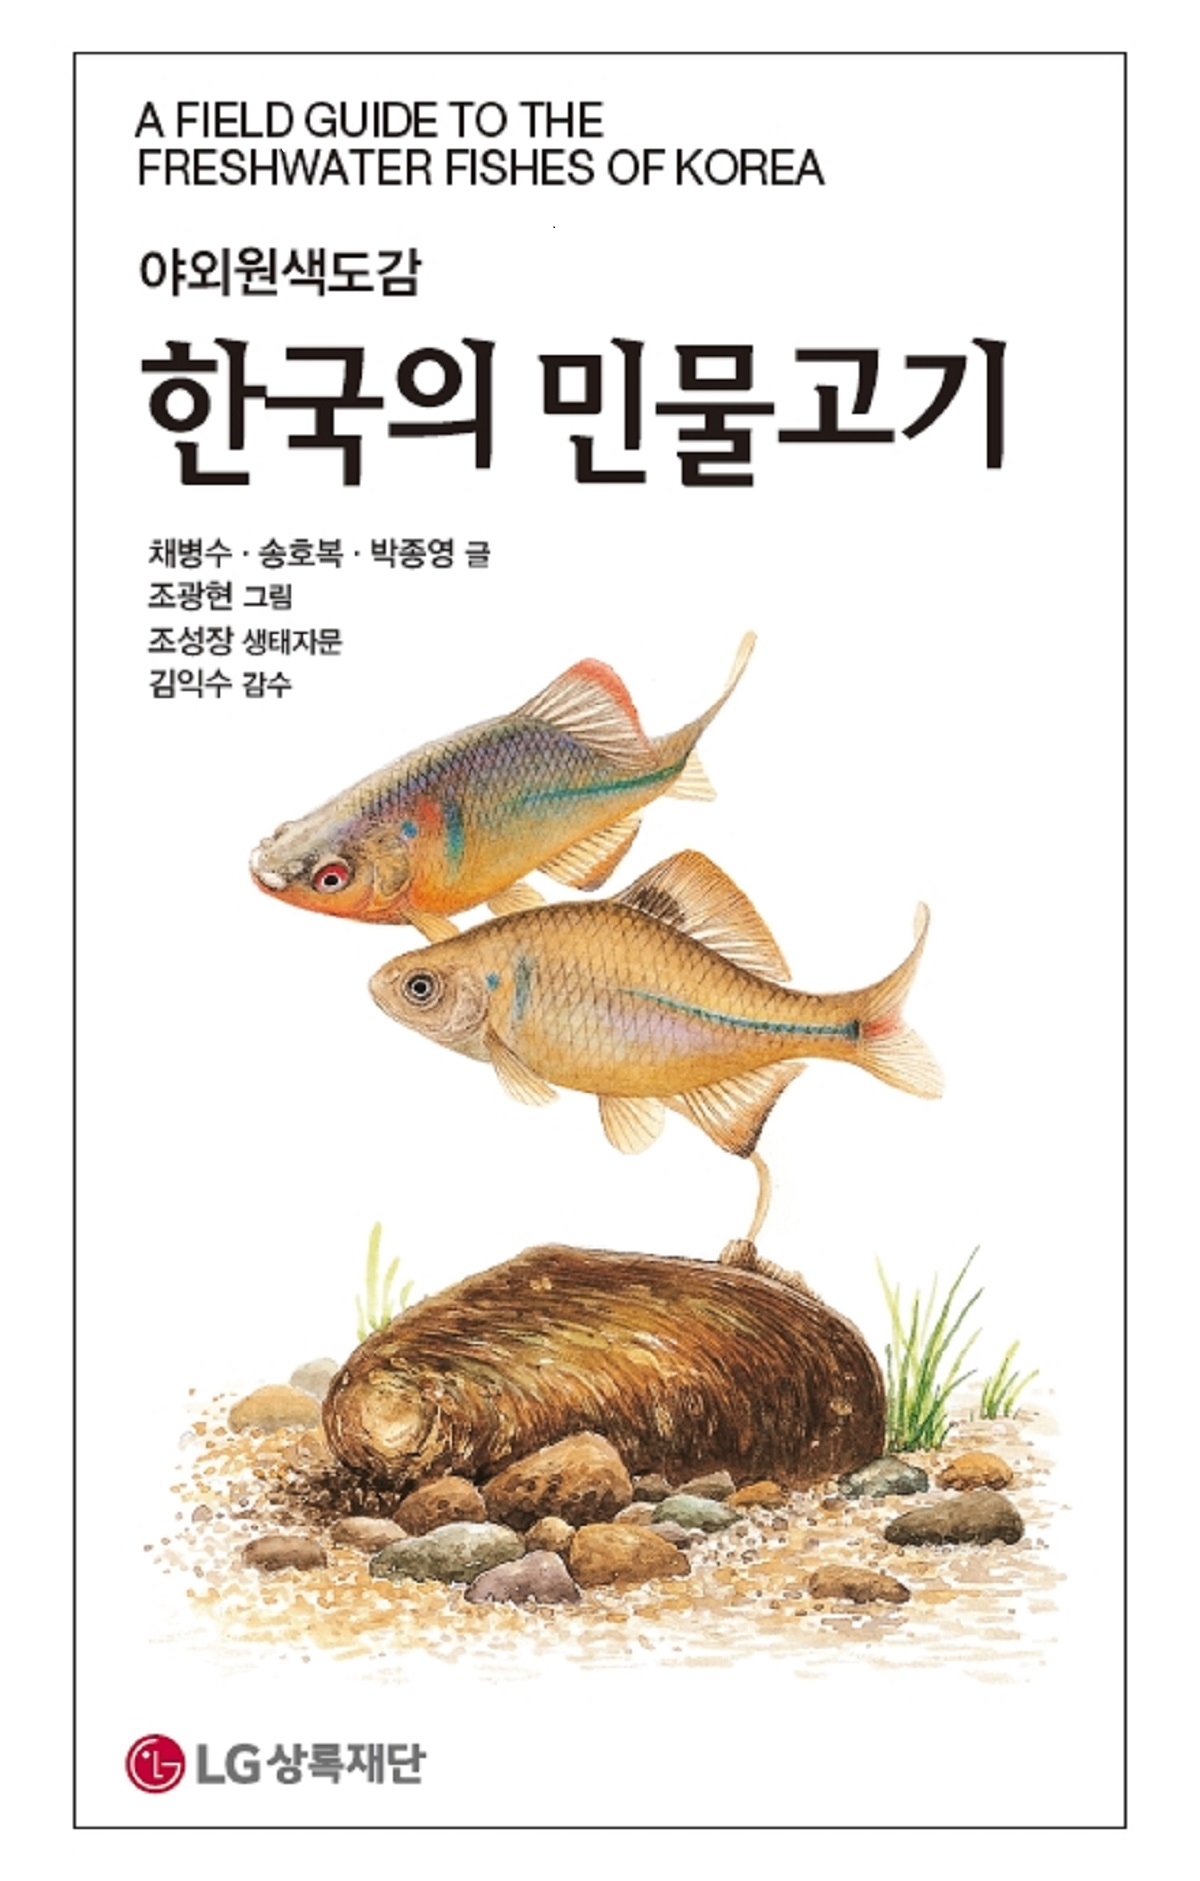 (야외원색도감) 한국의 민물고기 = (A) field guide to the freshwater fishes of korea